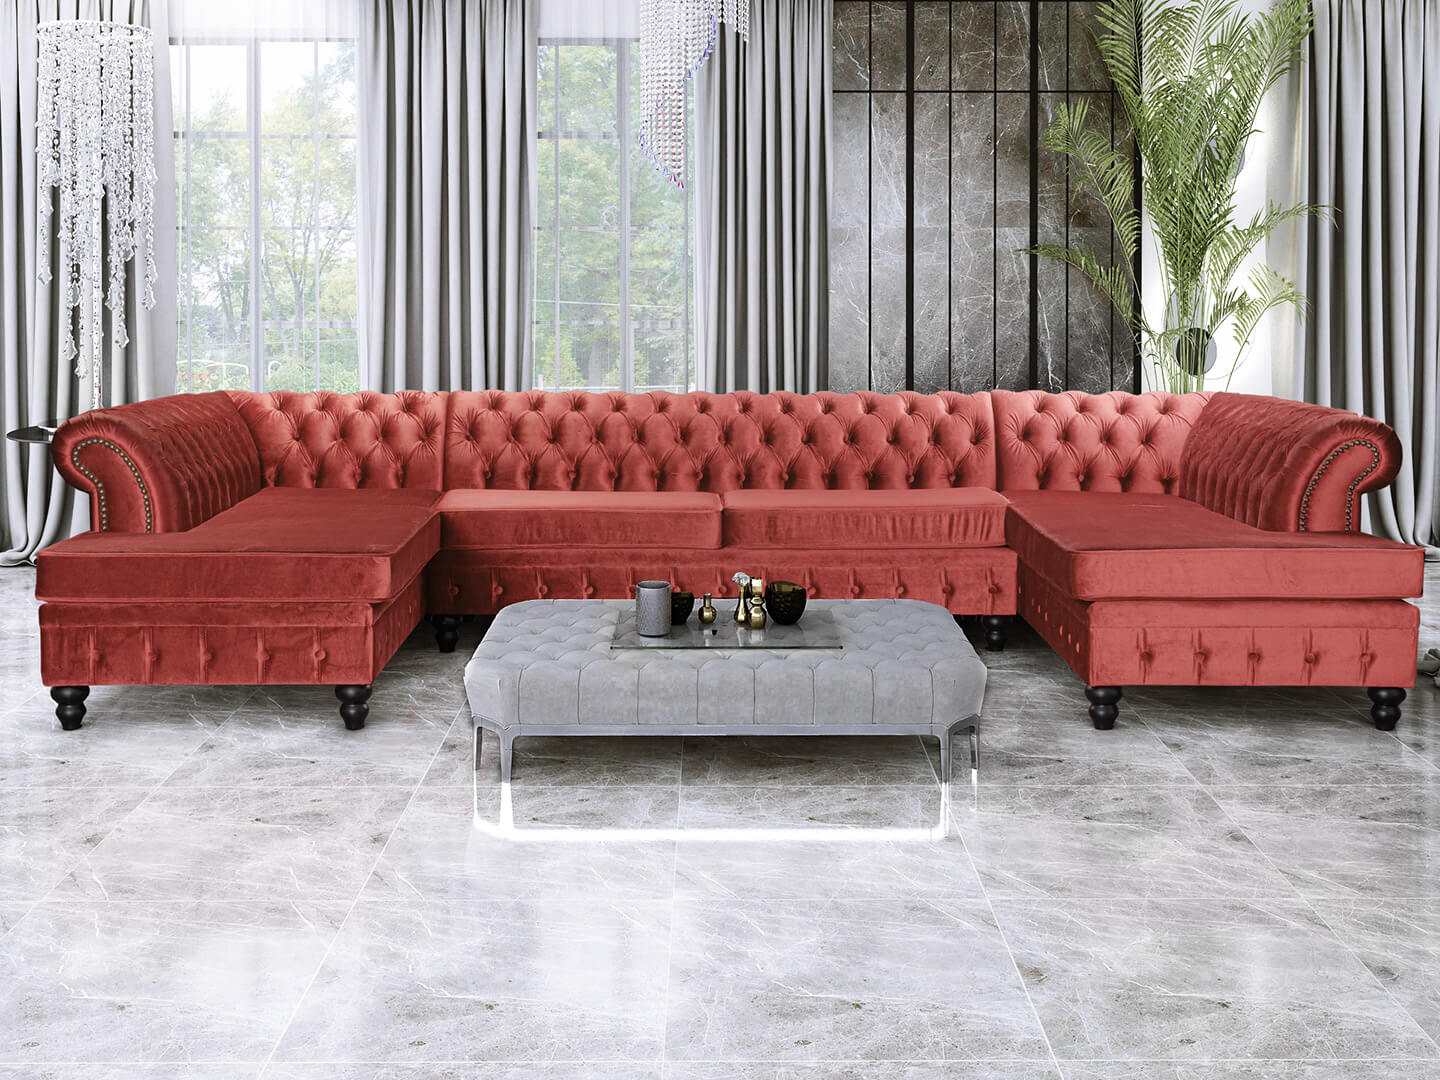 https://www.excluzive.se/wp-content/uploads/2020/10/Chesterfield-Long-U-soffa-Coral.jpg